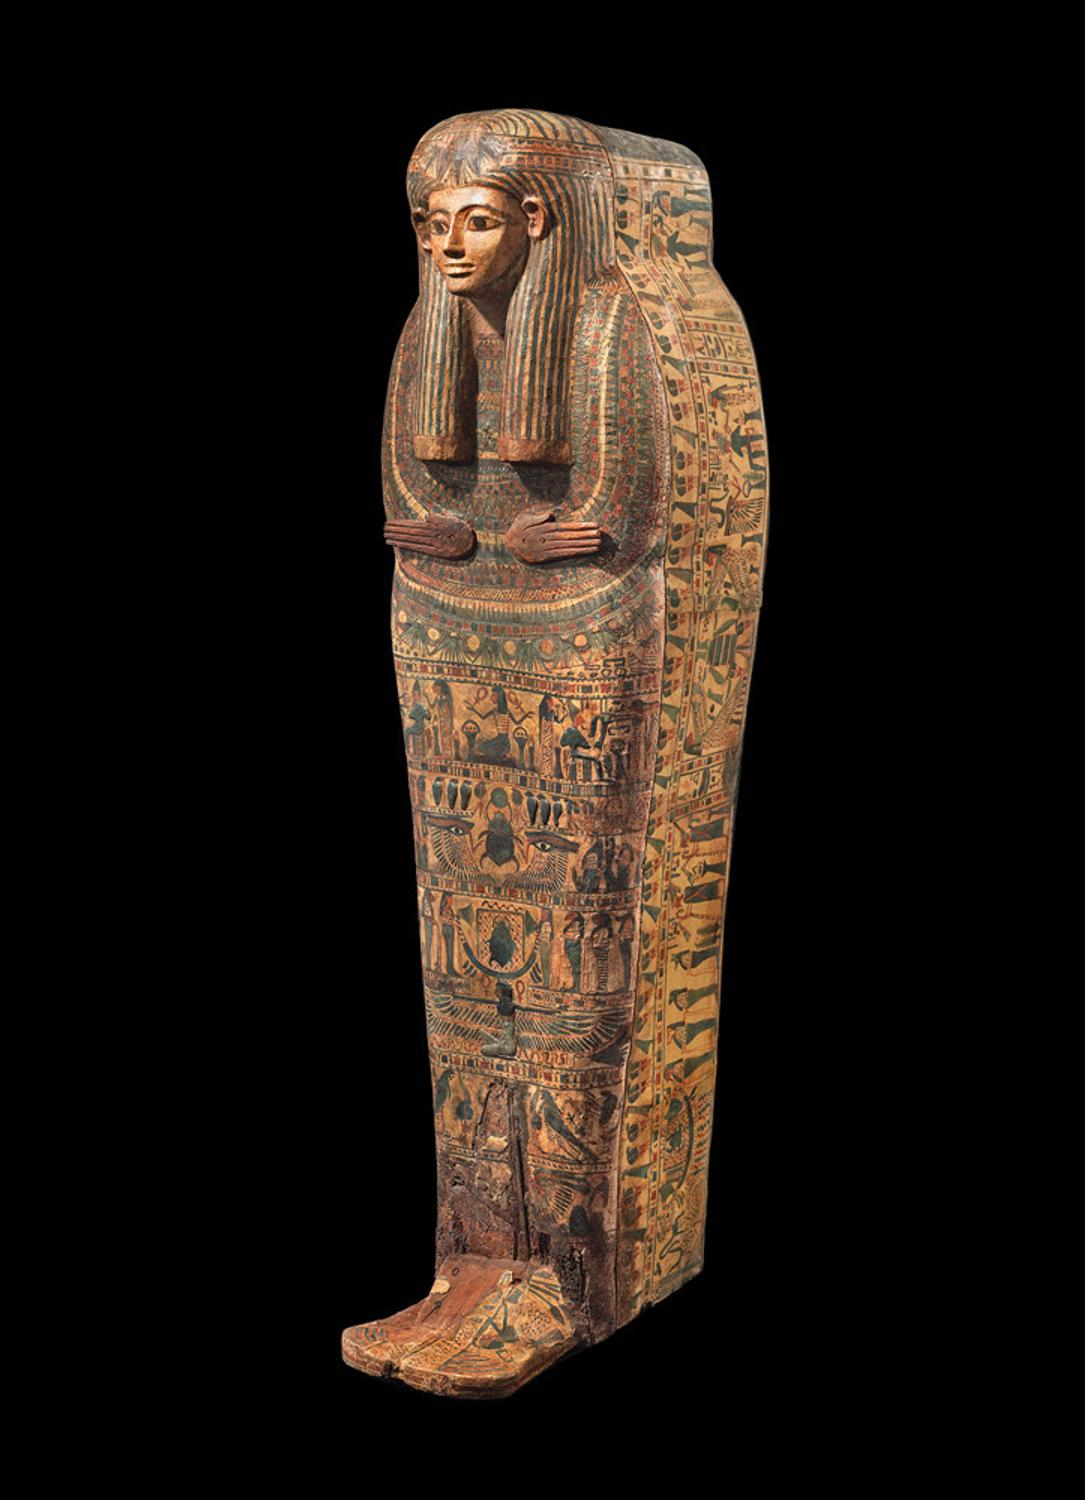 Uncategorized Pictures Of Sarcophagus safani gallery to offer rare anthropoid sarcophagus lid and coffin with its mummy board at artwire press release from artfi